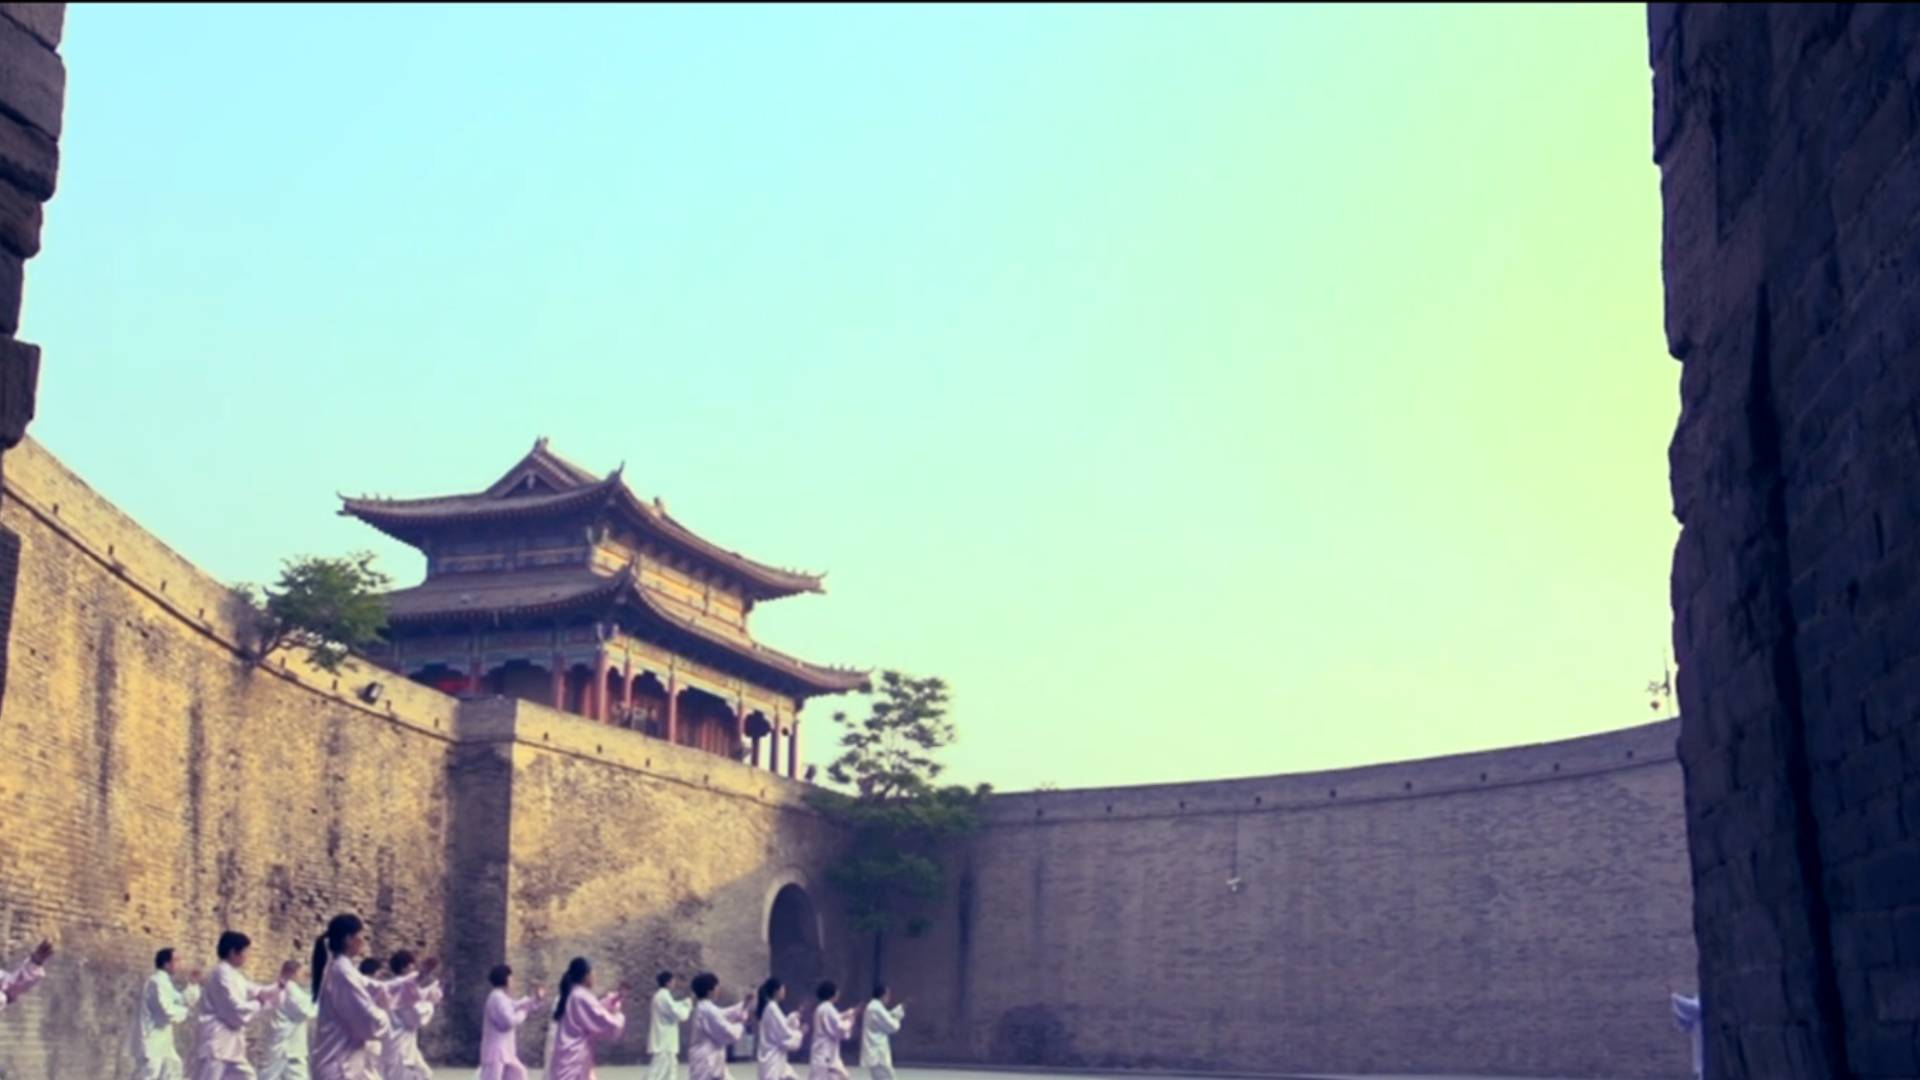 Taijiquan enshrined among World's Intangible Cultural Heritages